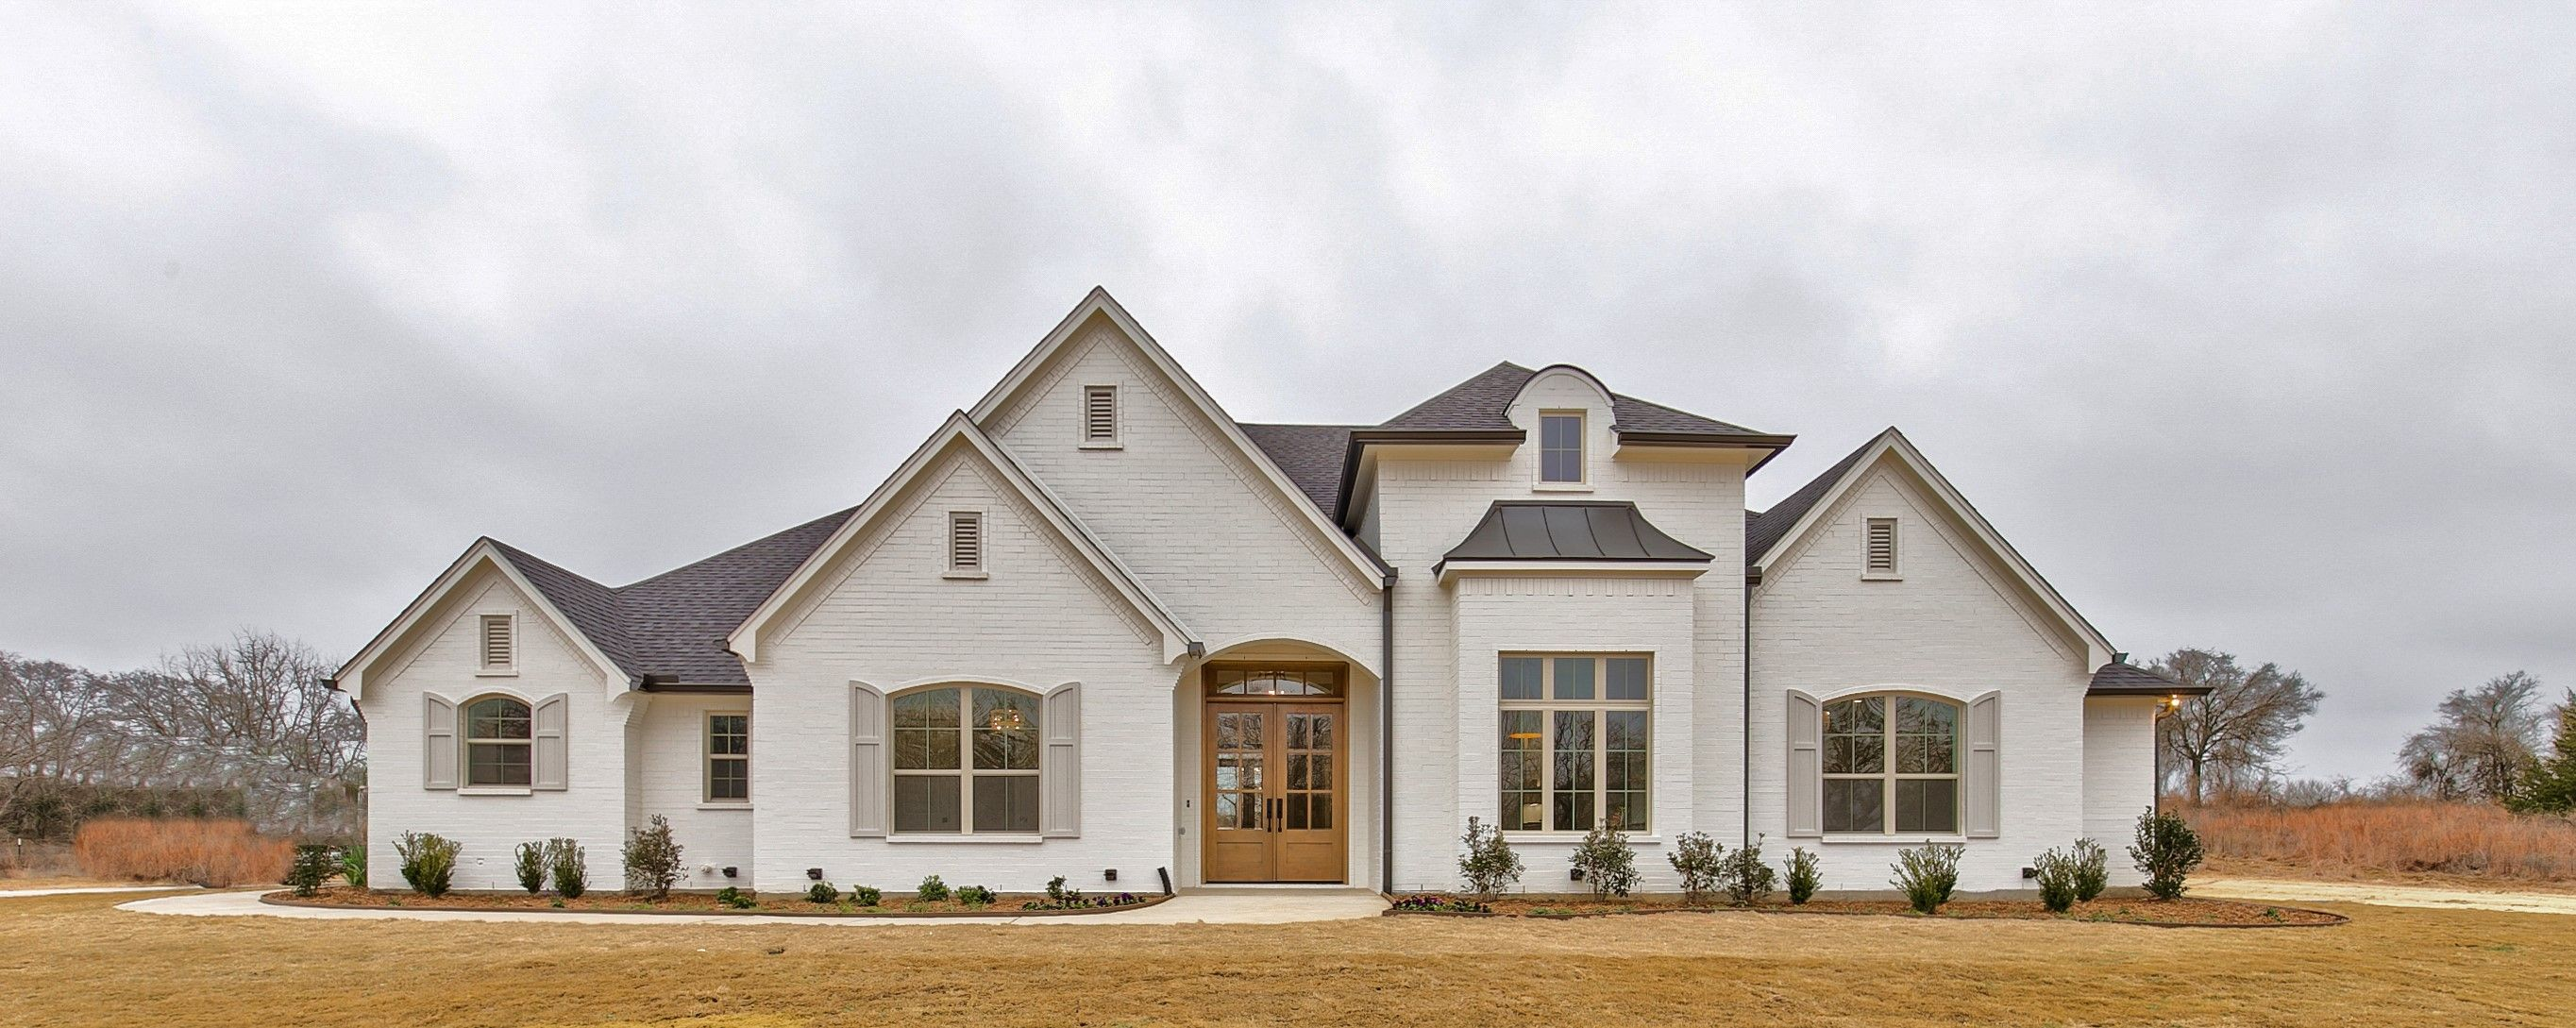 Charming Texas Custom Home In 2020 Ranch Style Homes Custom Home Plans House Exterior